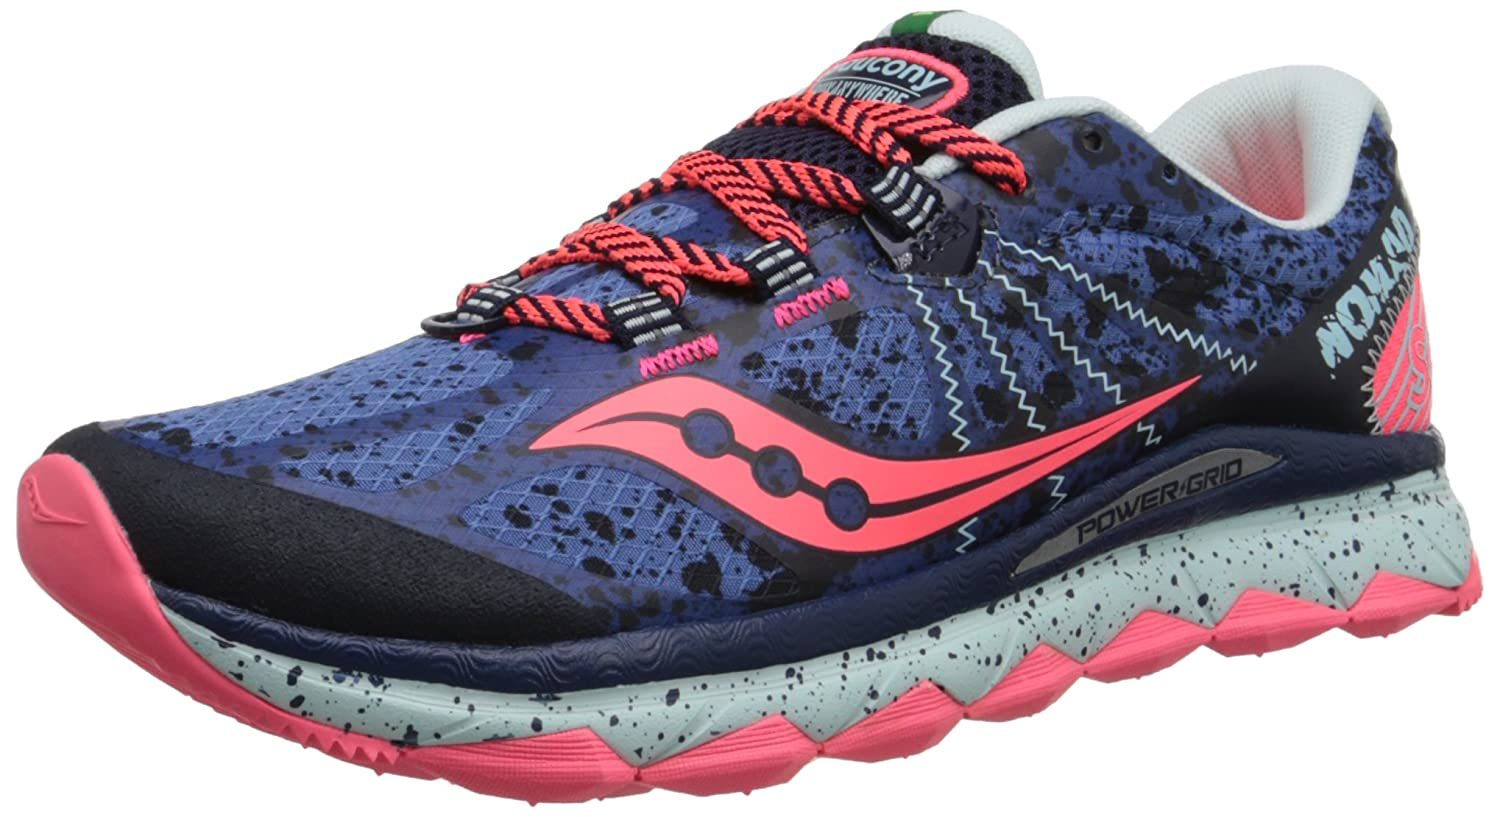 Saucony Women's Nomad TR Trail Running Shoe B00PJ8UFDU 9 B(M) US|Blue/Navy